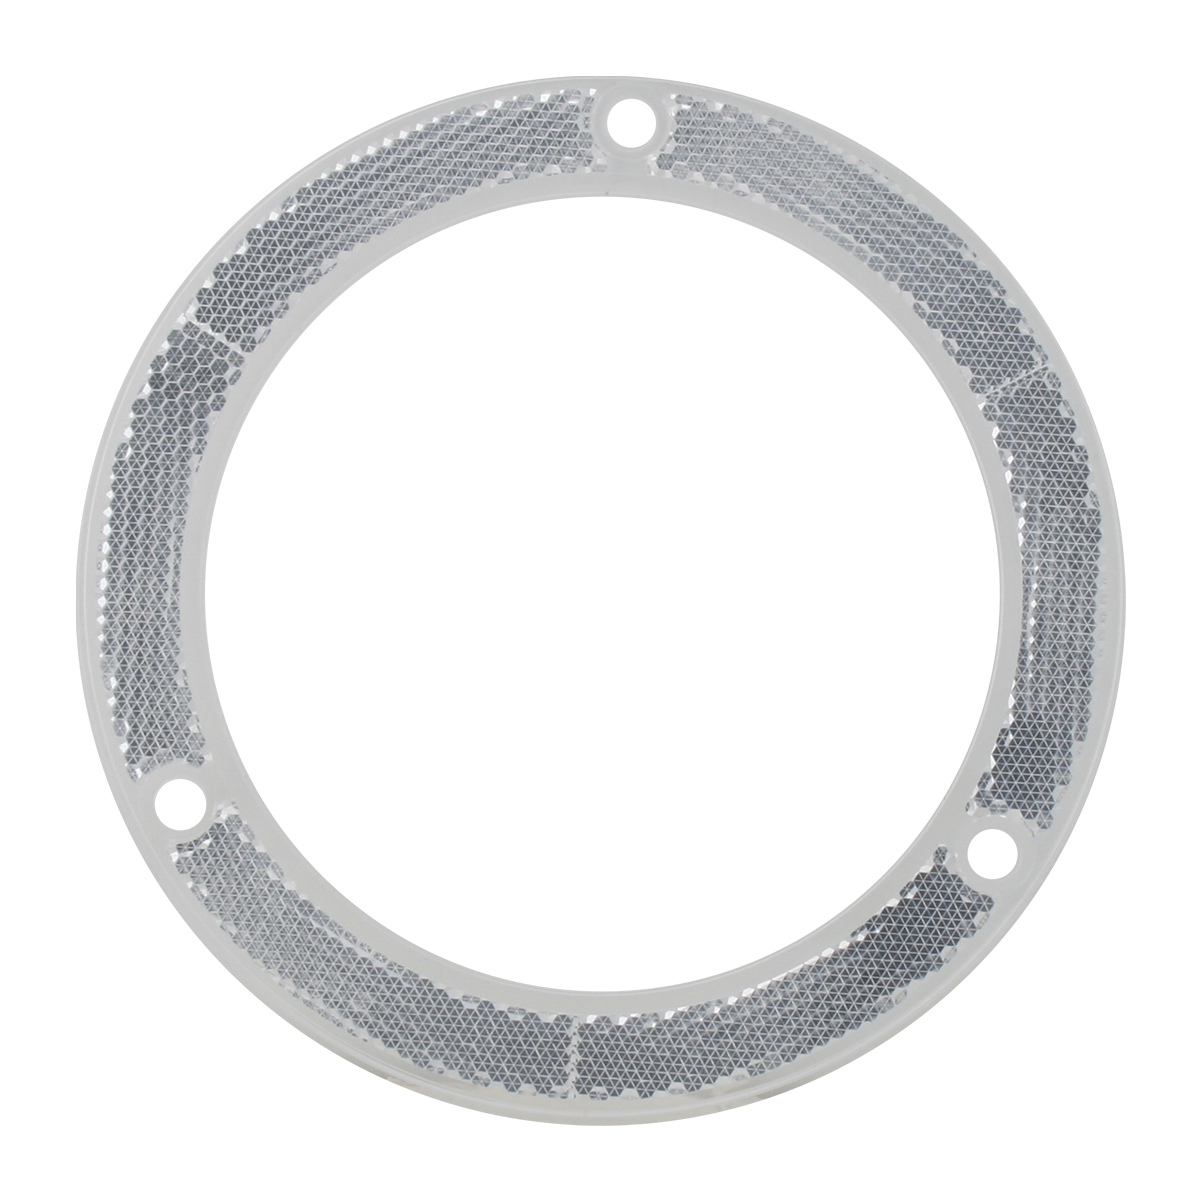 "81632 White Reflector Ring for 4"" Round Light"